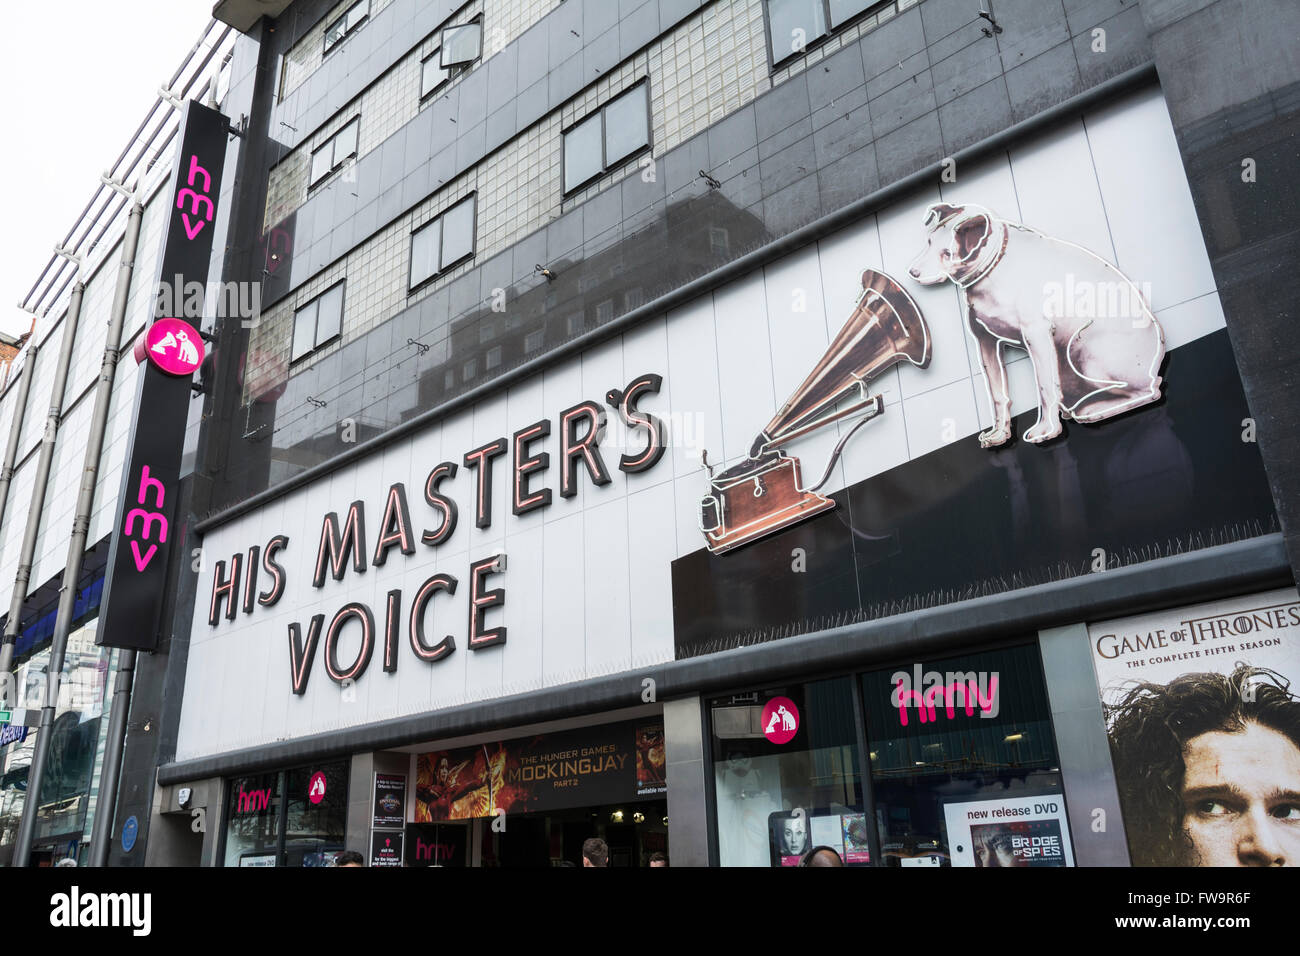 His Masters Voice The Original Hmv Shop 363 Oxford Street Opened